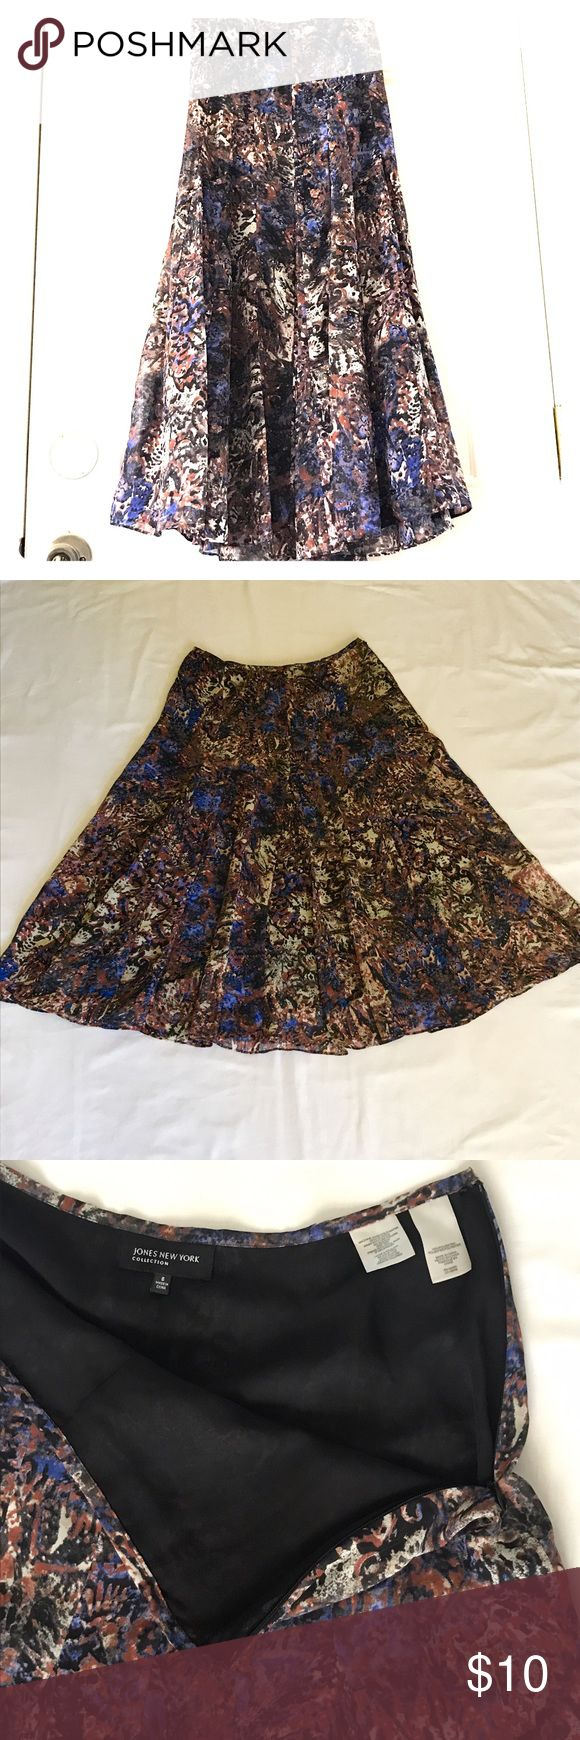 """Jones New York long circle skirt Long circle skirt with blue, cream, red, and black design.  100% polyester.   Great condition.  Side zipper closure.  Waist 15"""", length 31"""" flat.  Made by Jones New York.  Size 6. Jones New York Skirts Circle & Skater"""